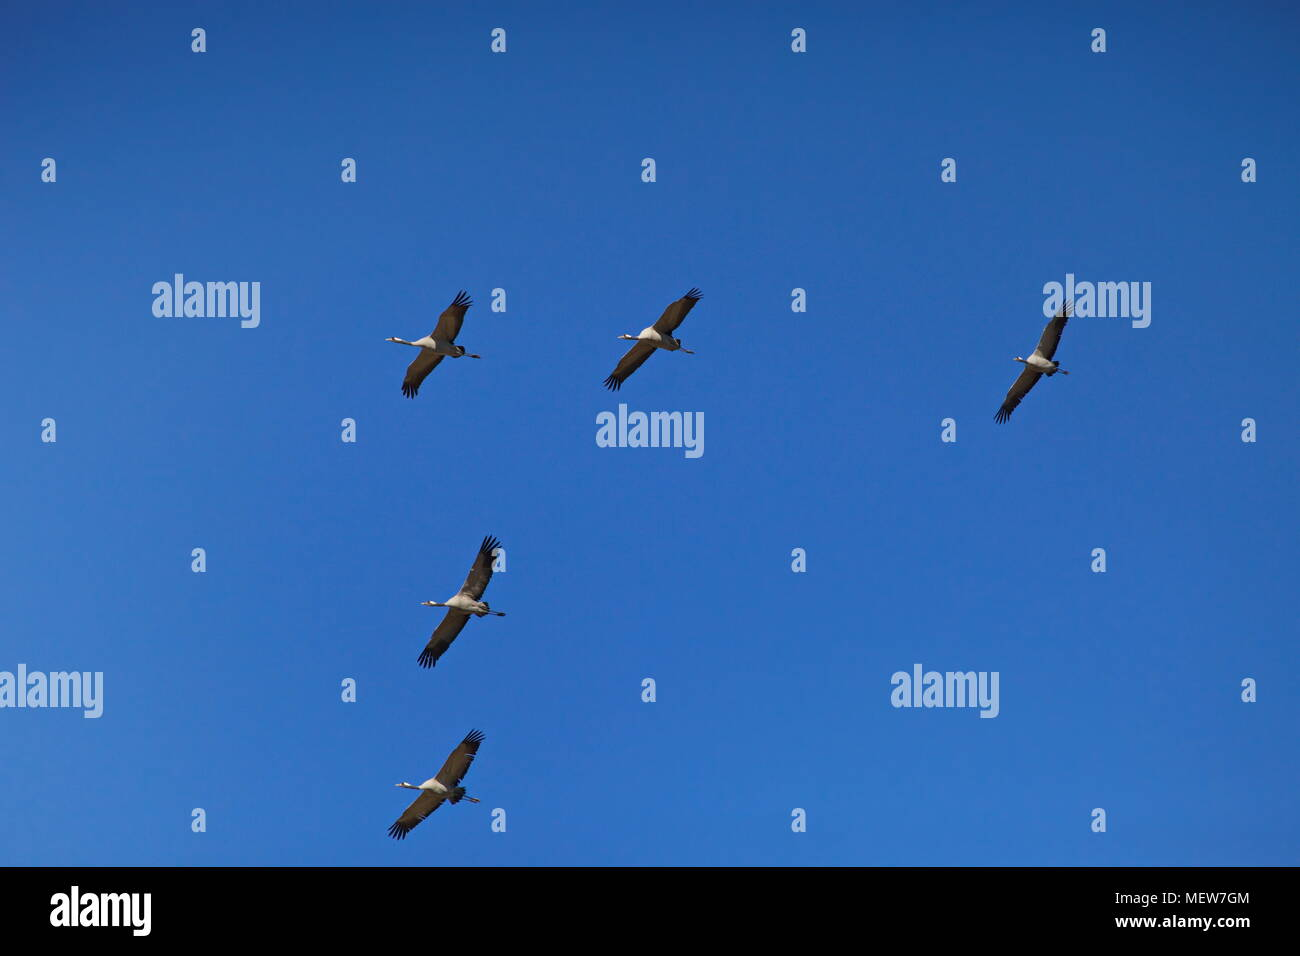 Common cranes (Grus grus) are soaring through the sky on a sunny day in spring. - Stock Image